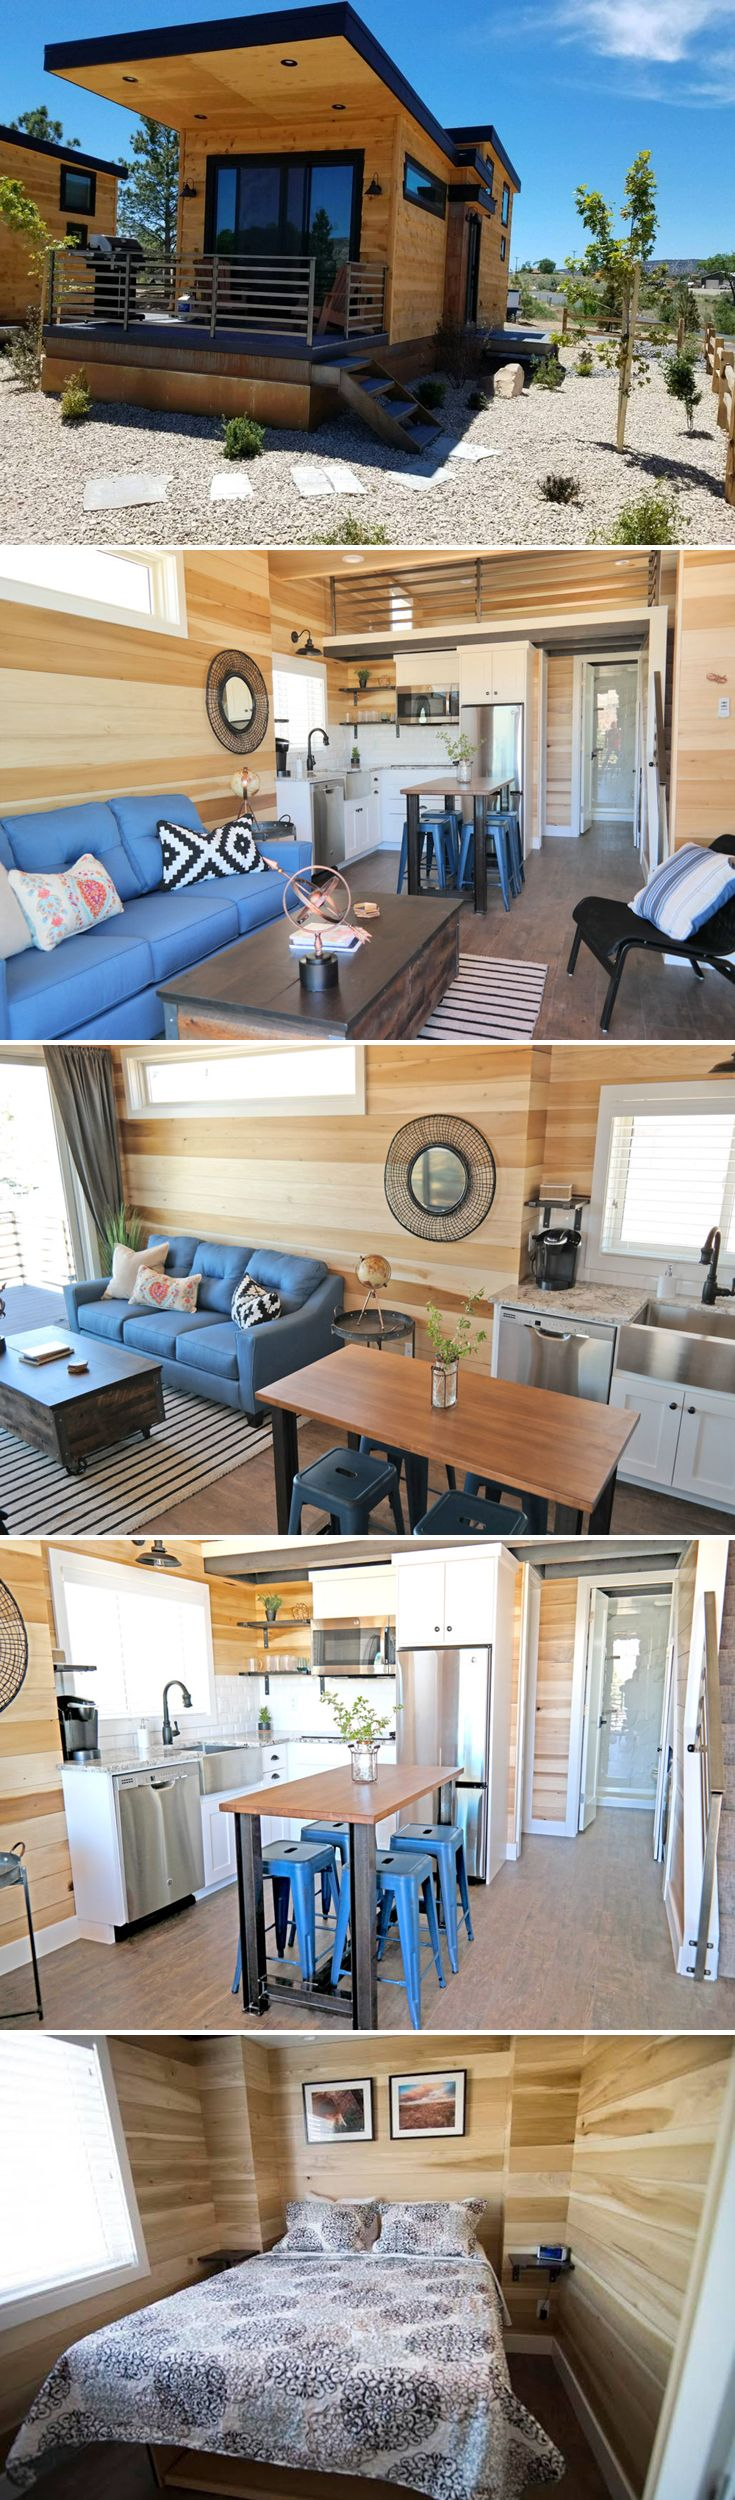 Best 25 tiny house rentals ideas on pinterest for Small home builders near me